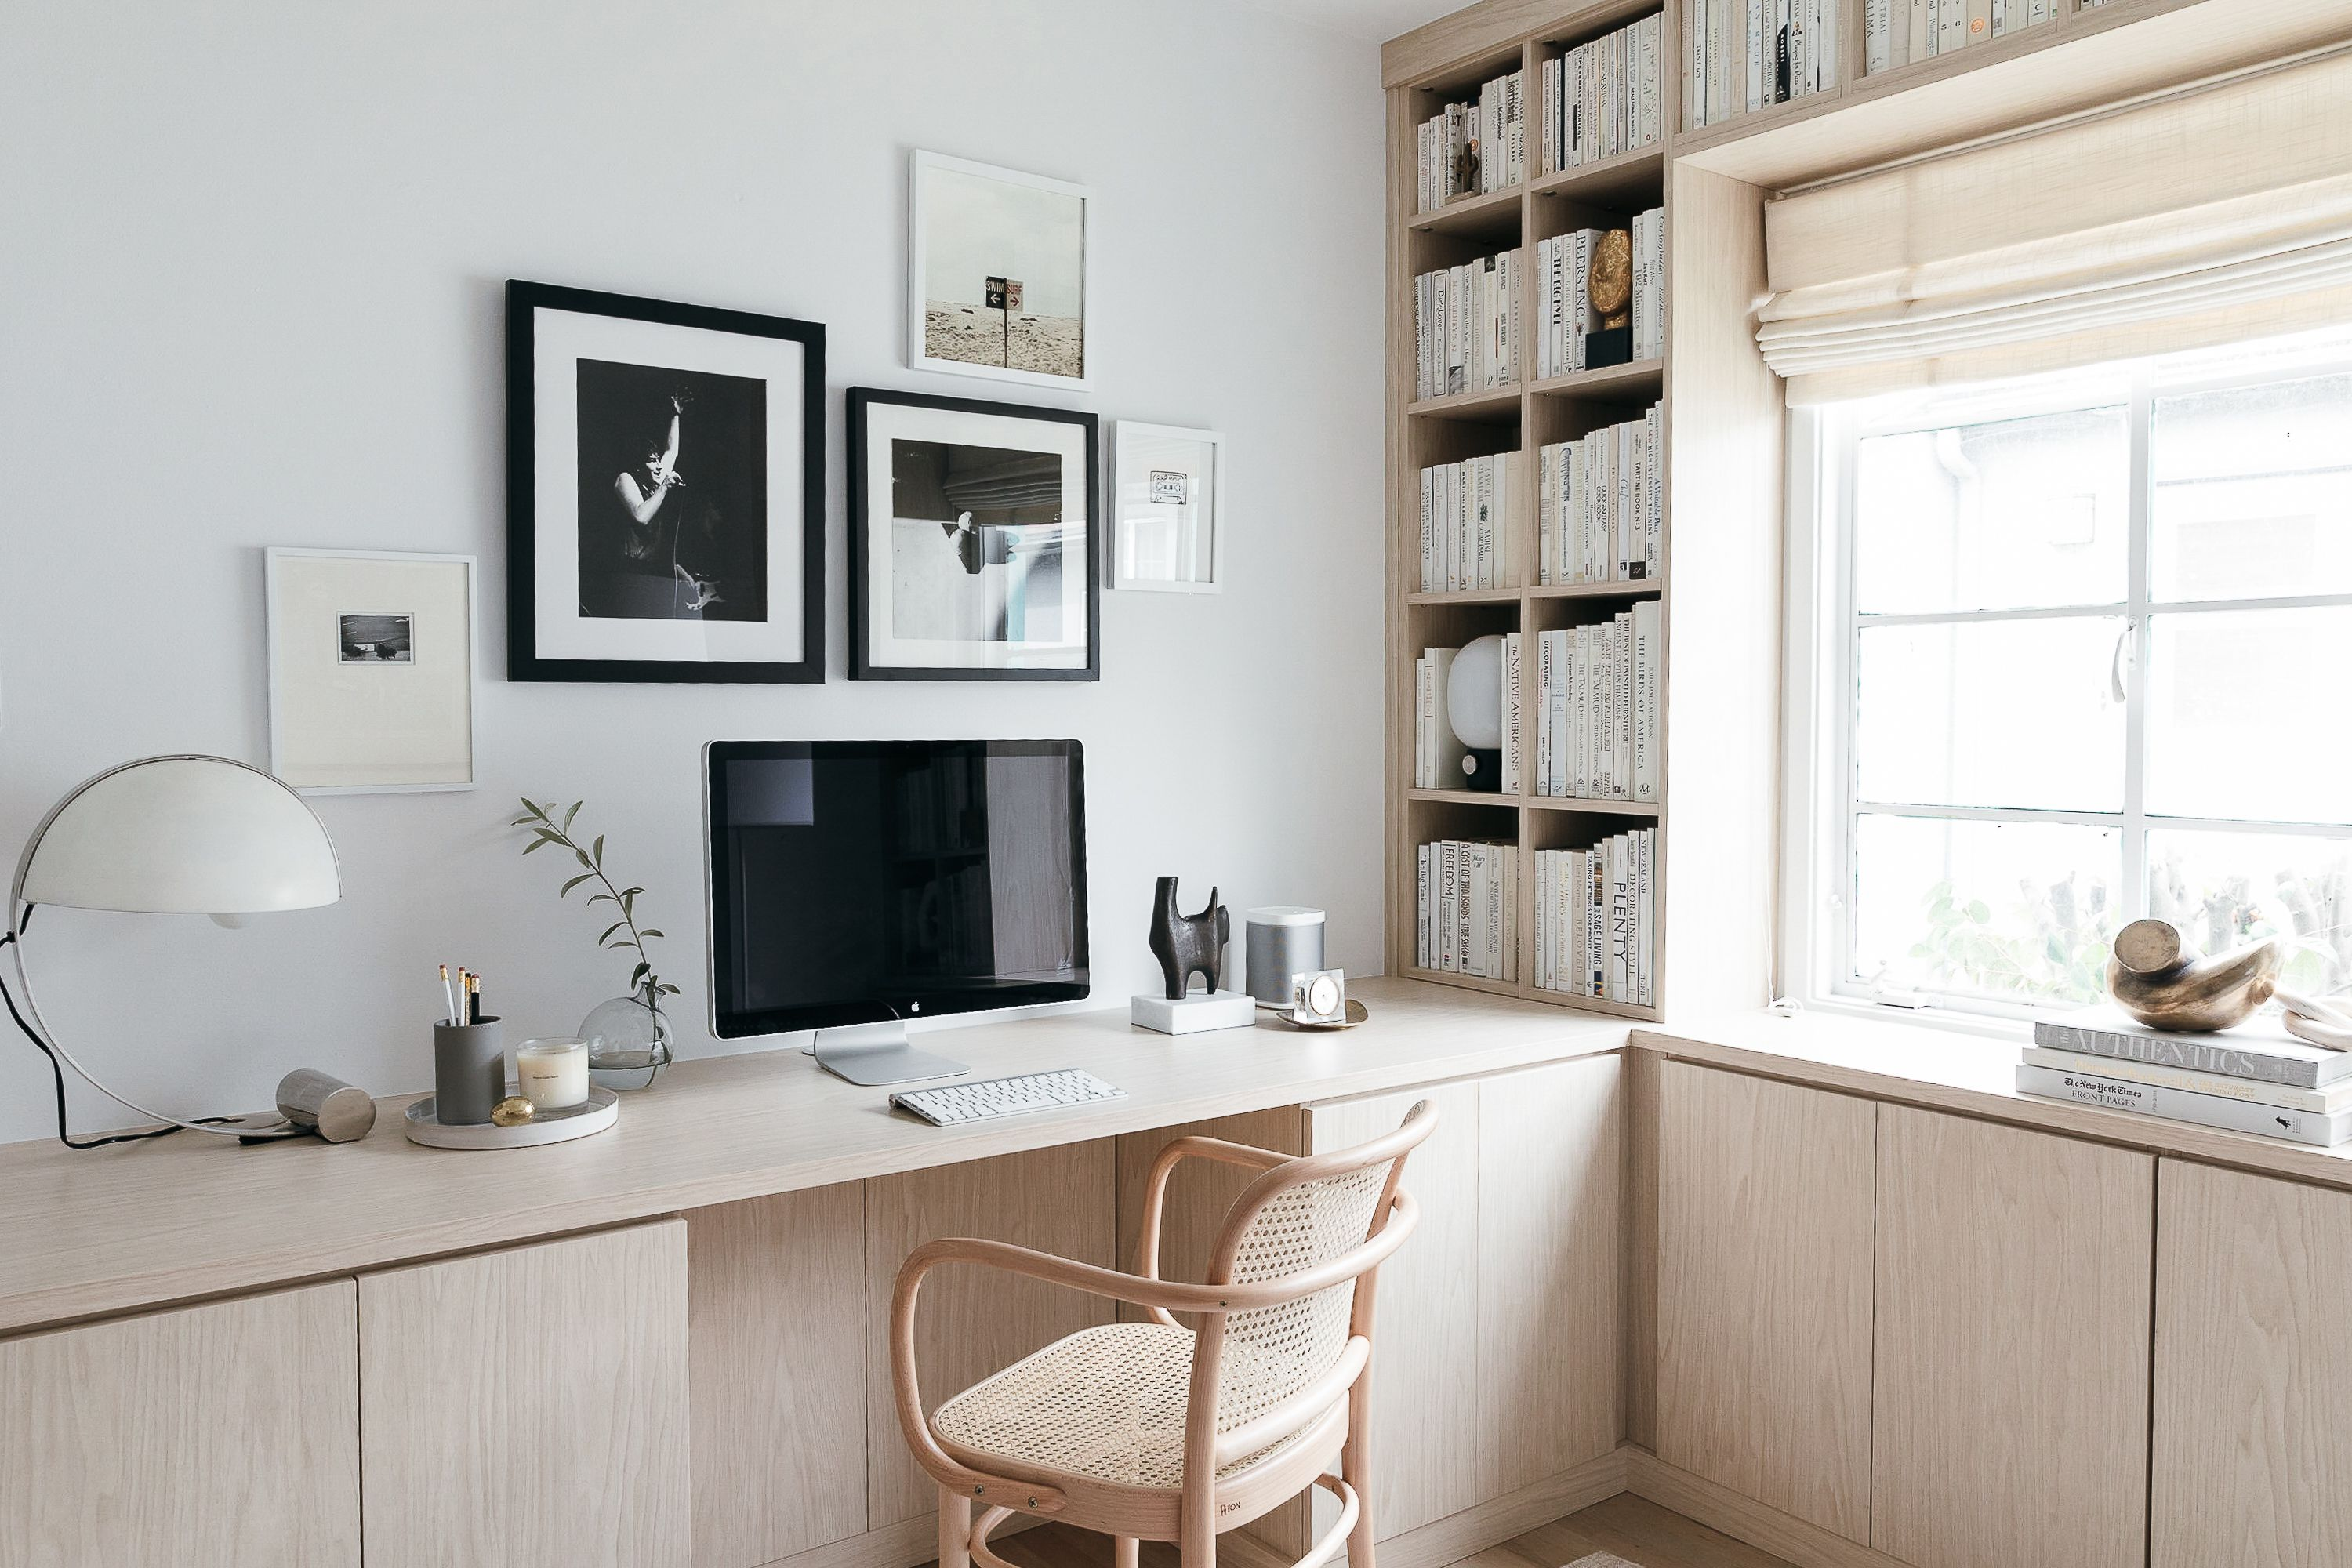 The First Five Things You Should Buy For Your Home Office, According to Bobby Berk